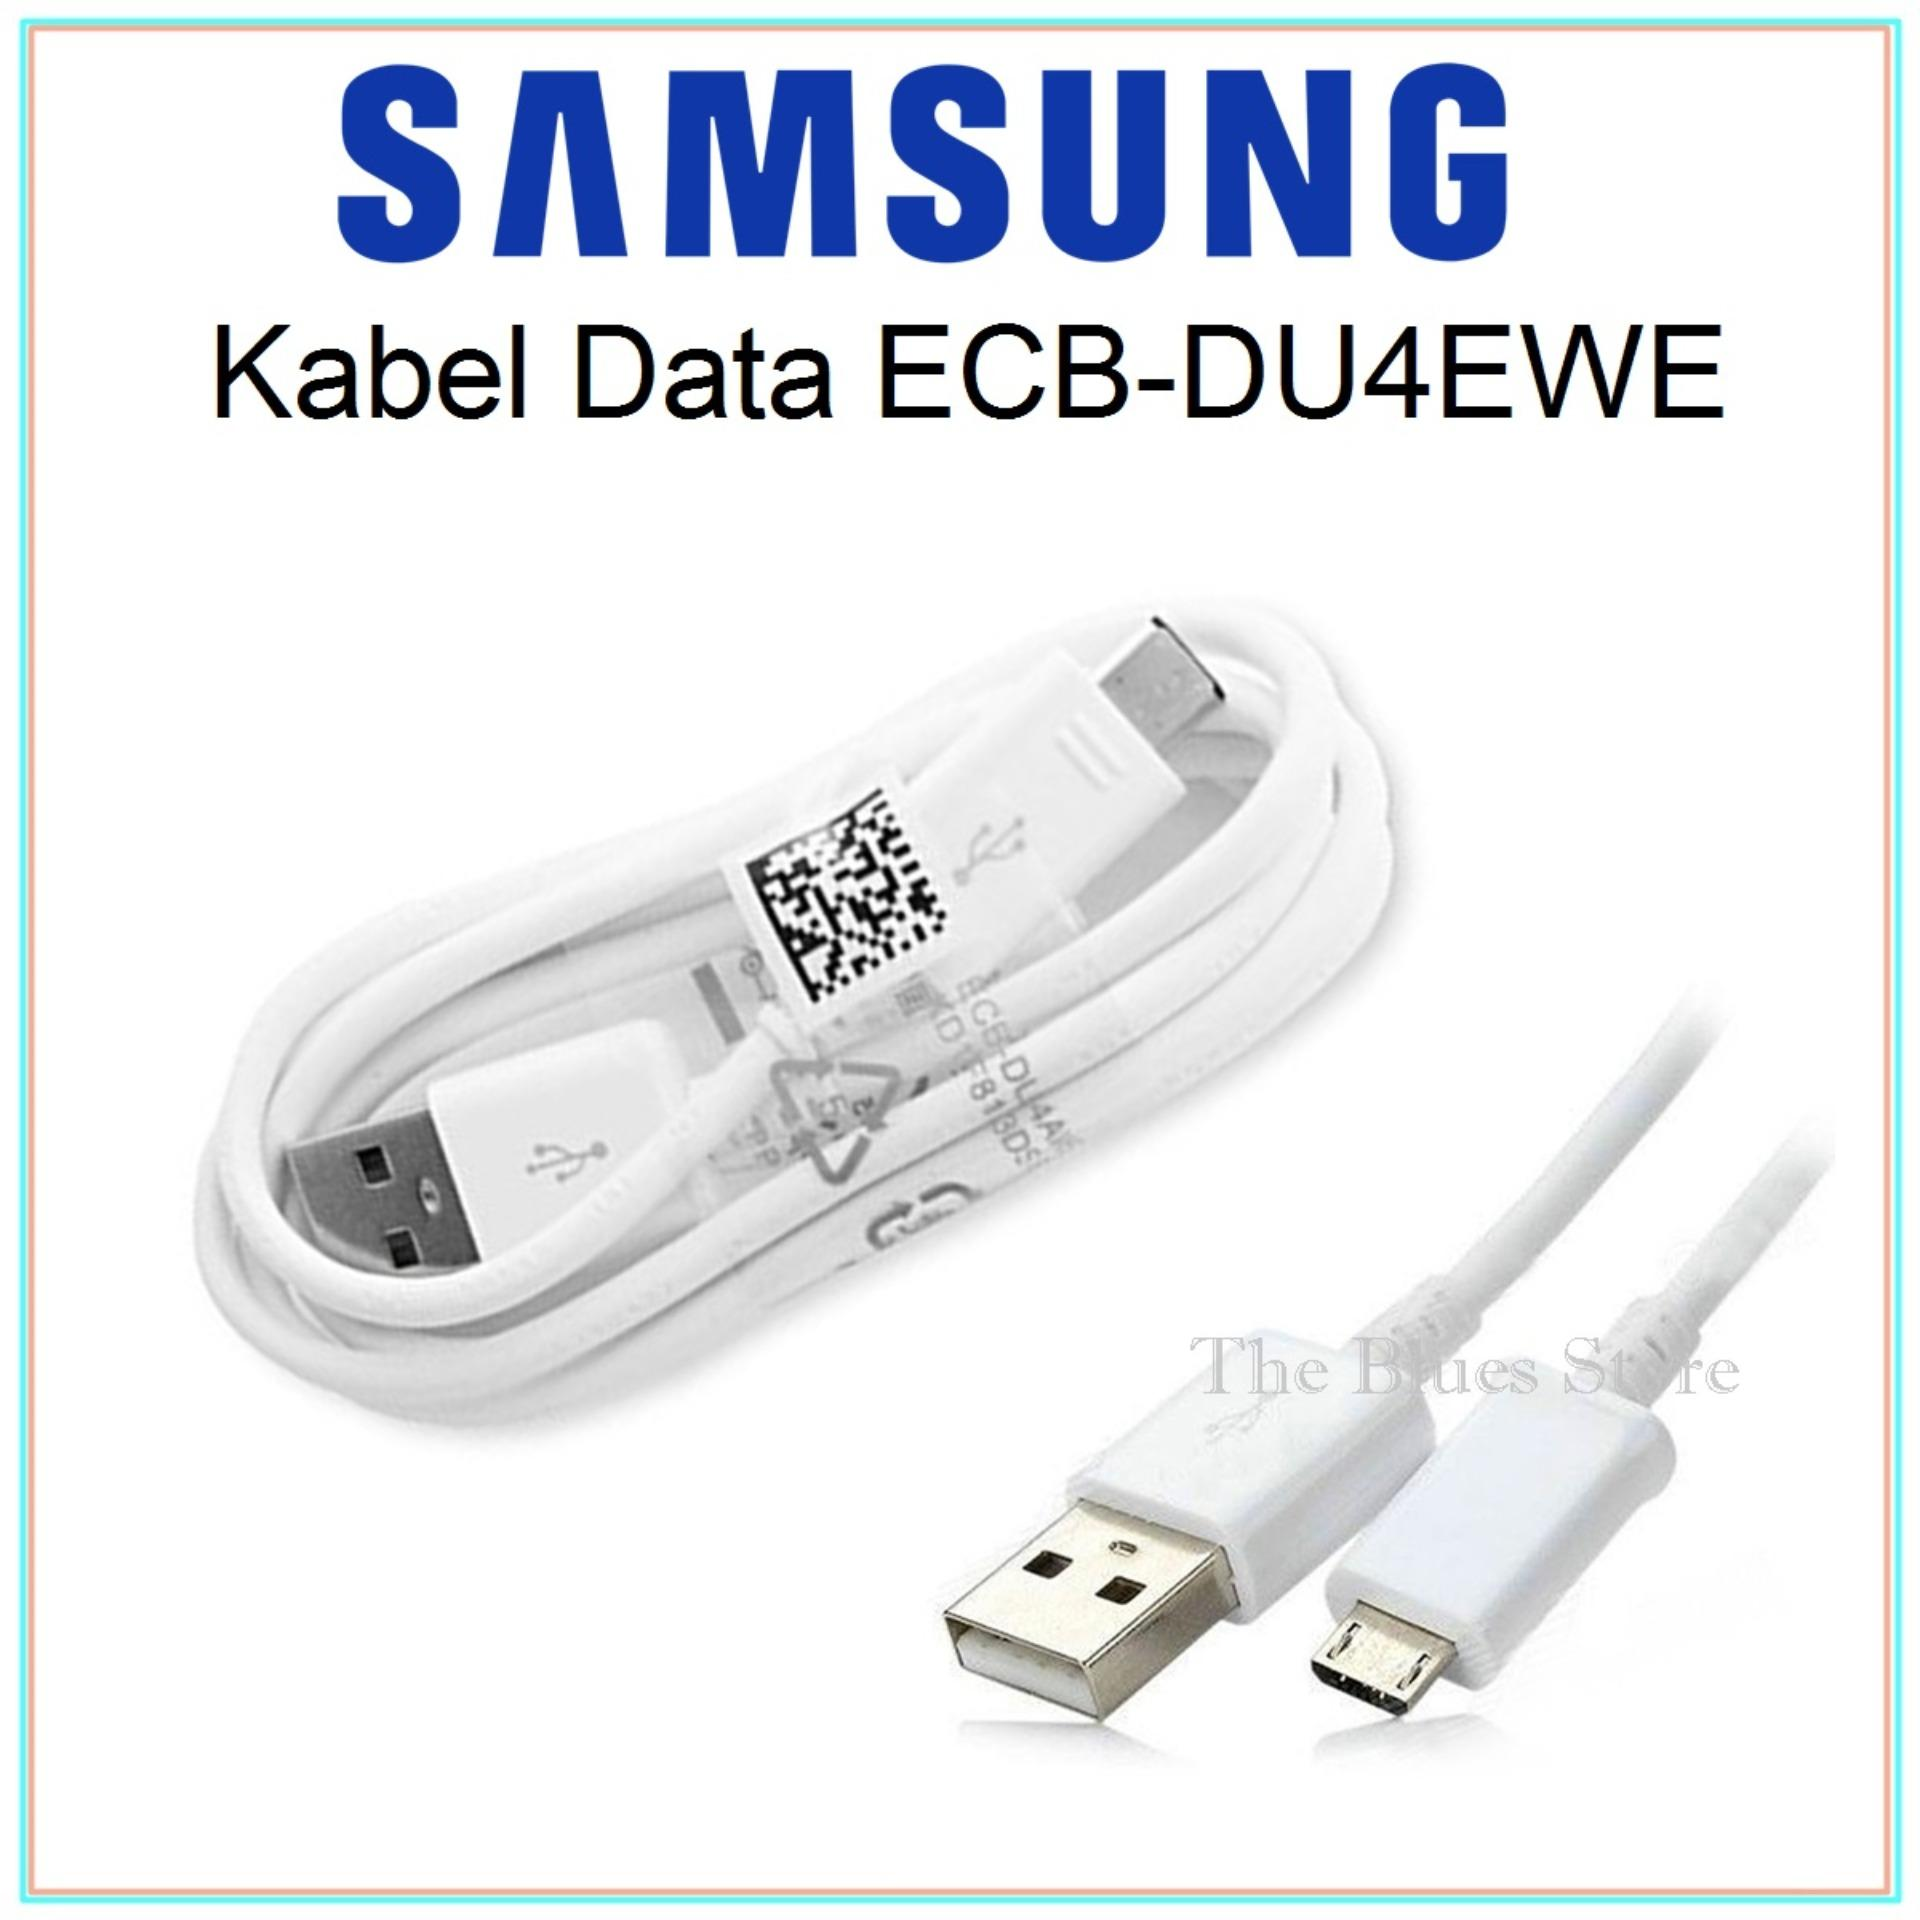 Samsung kabel data Micro USB type ECB-DU4EWE 1m - Original